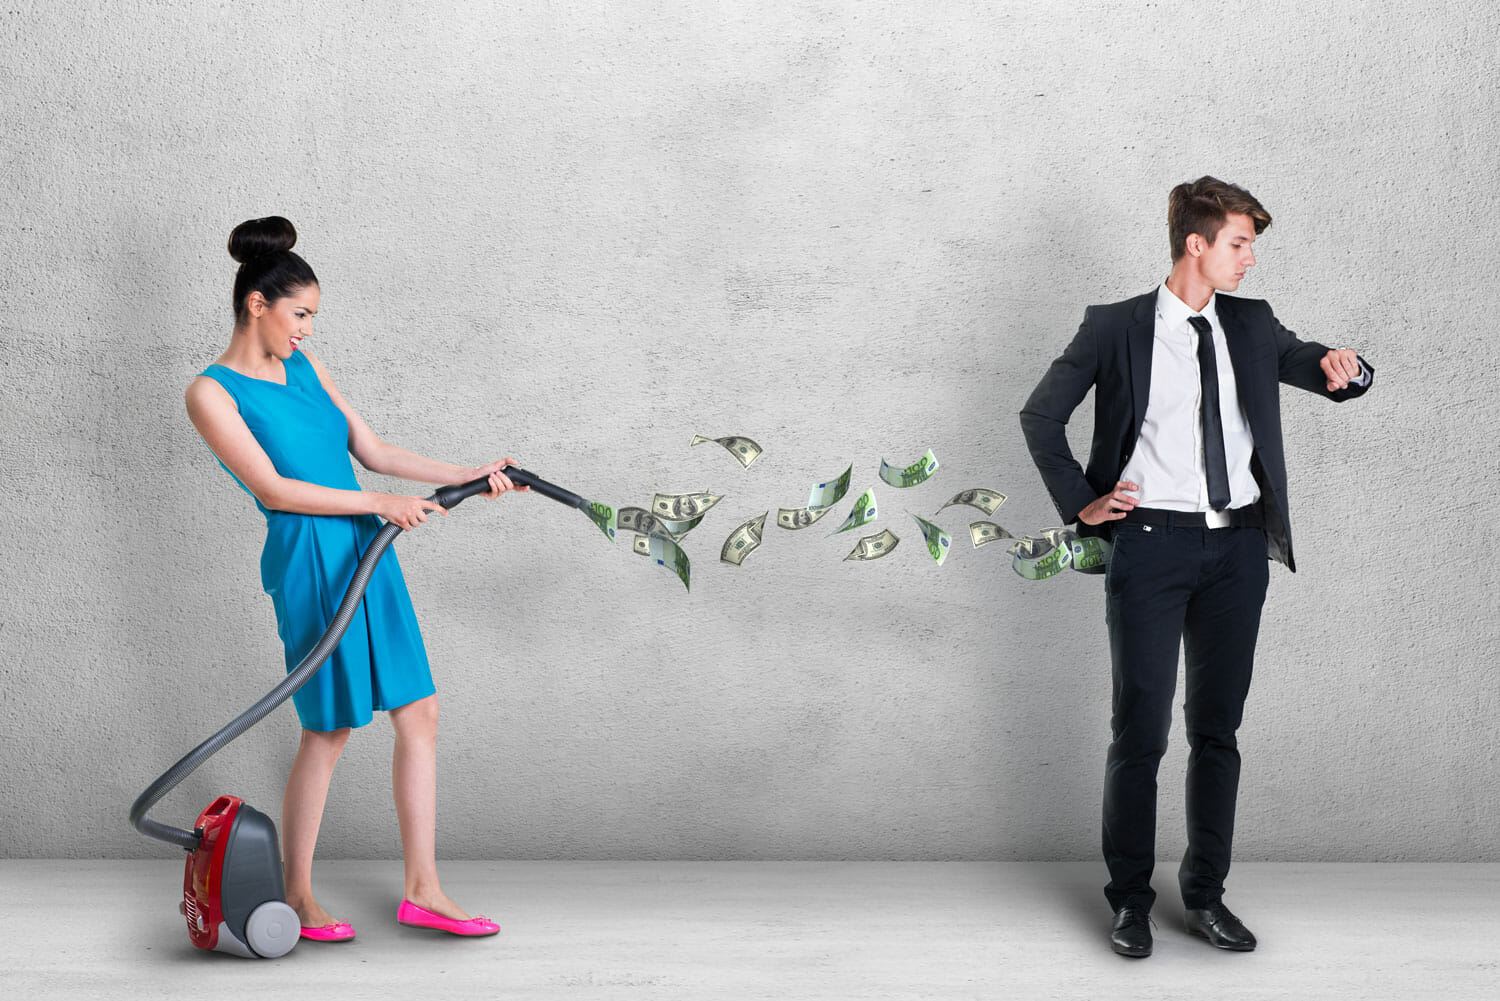 length of marriage and spousal support